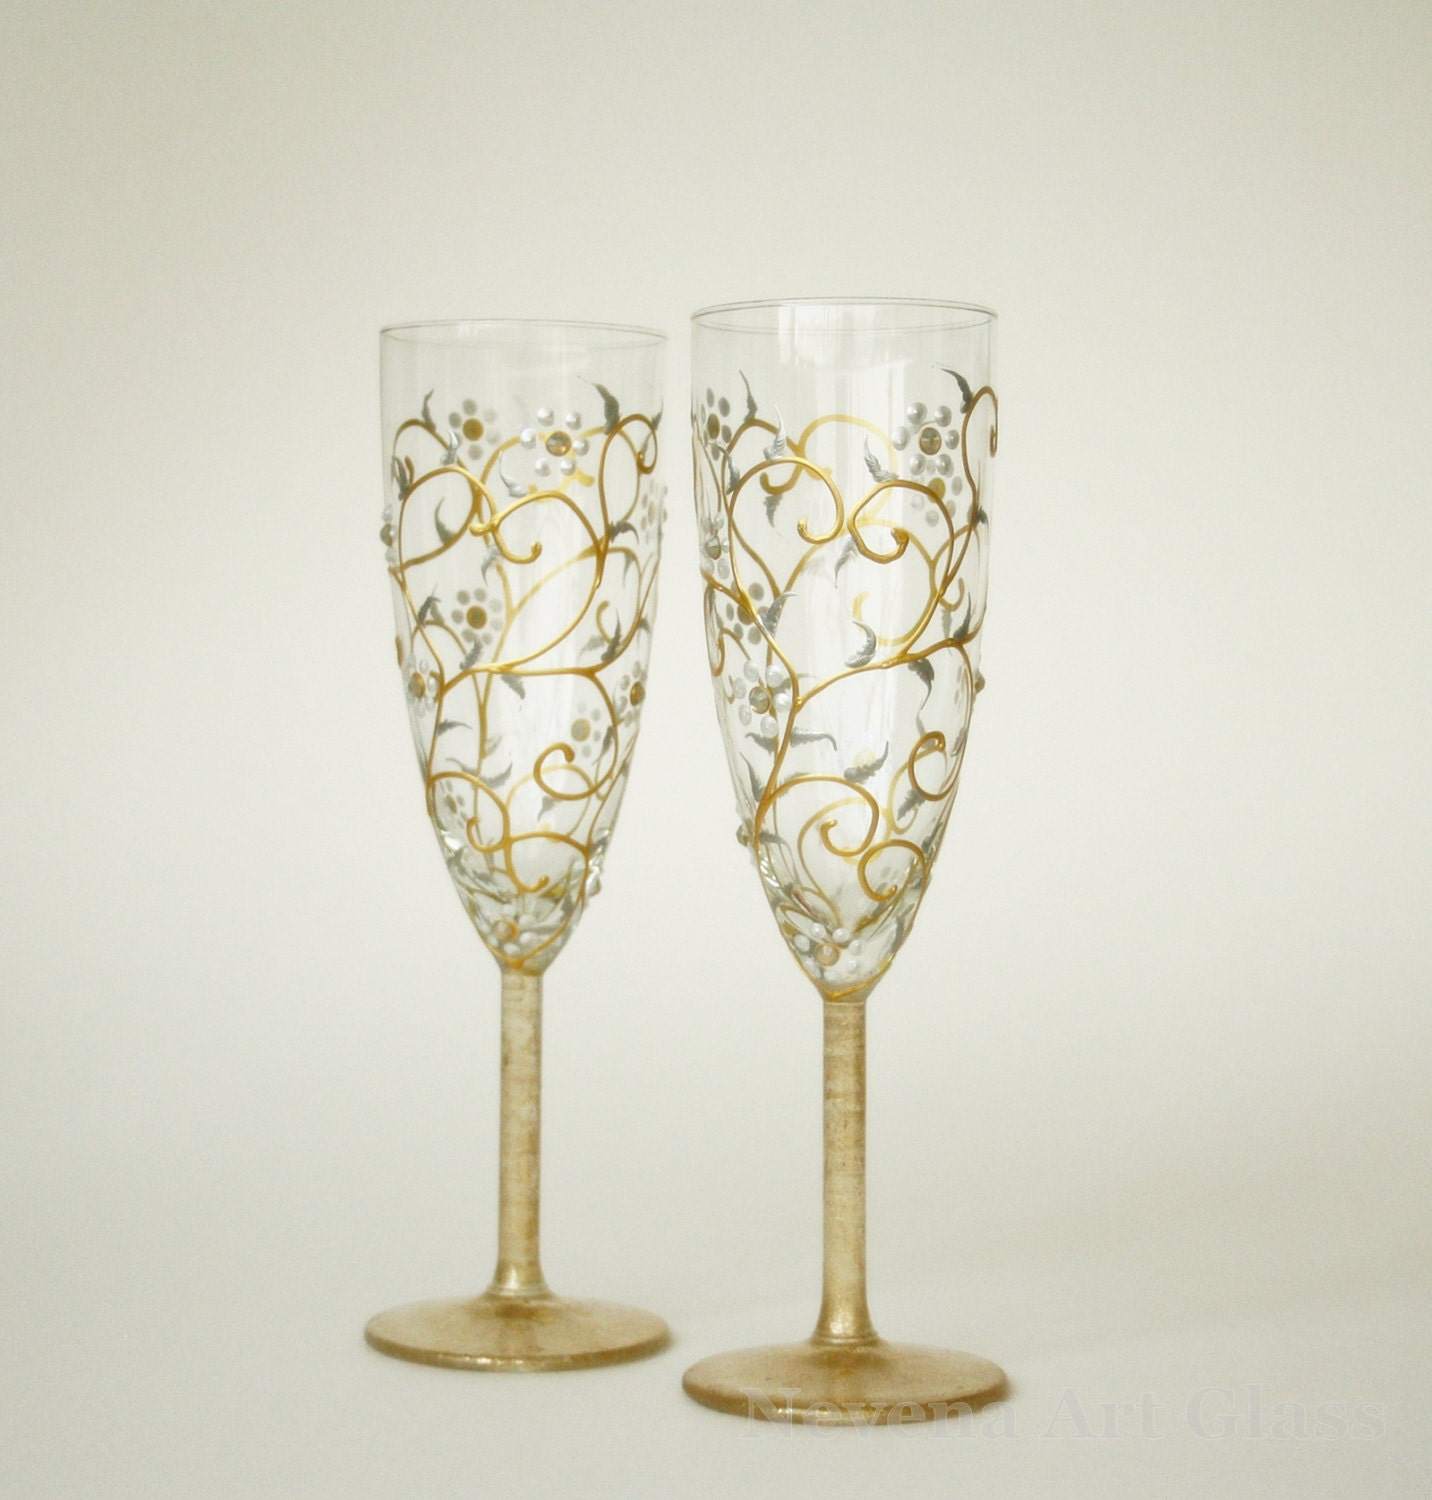 Wedding Glasses HAND PAINTED White Gold Floral Design